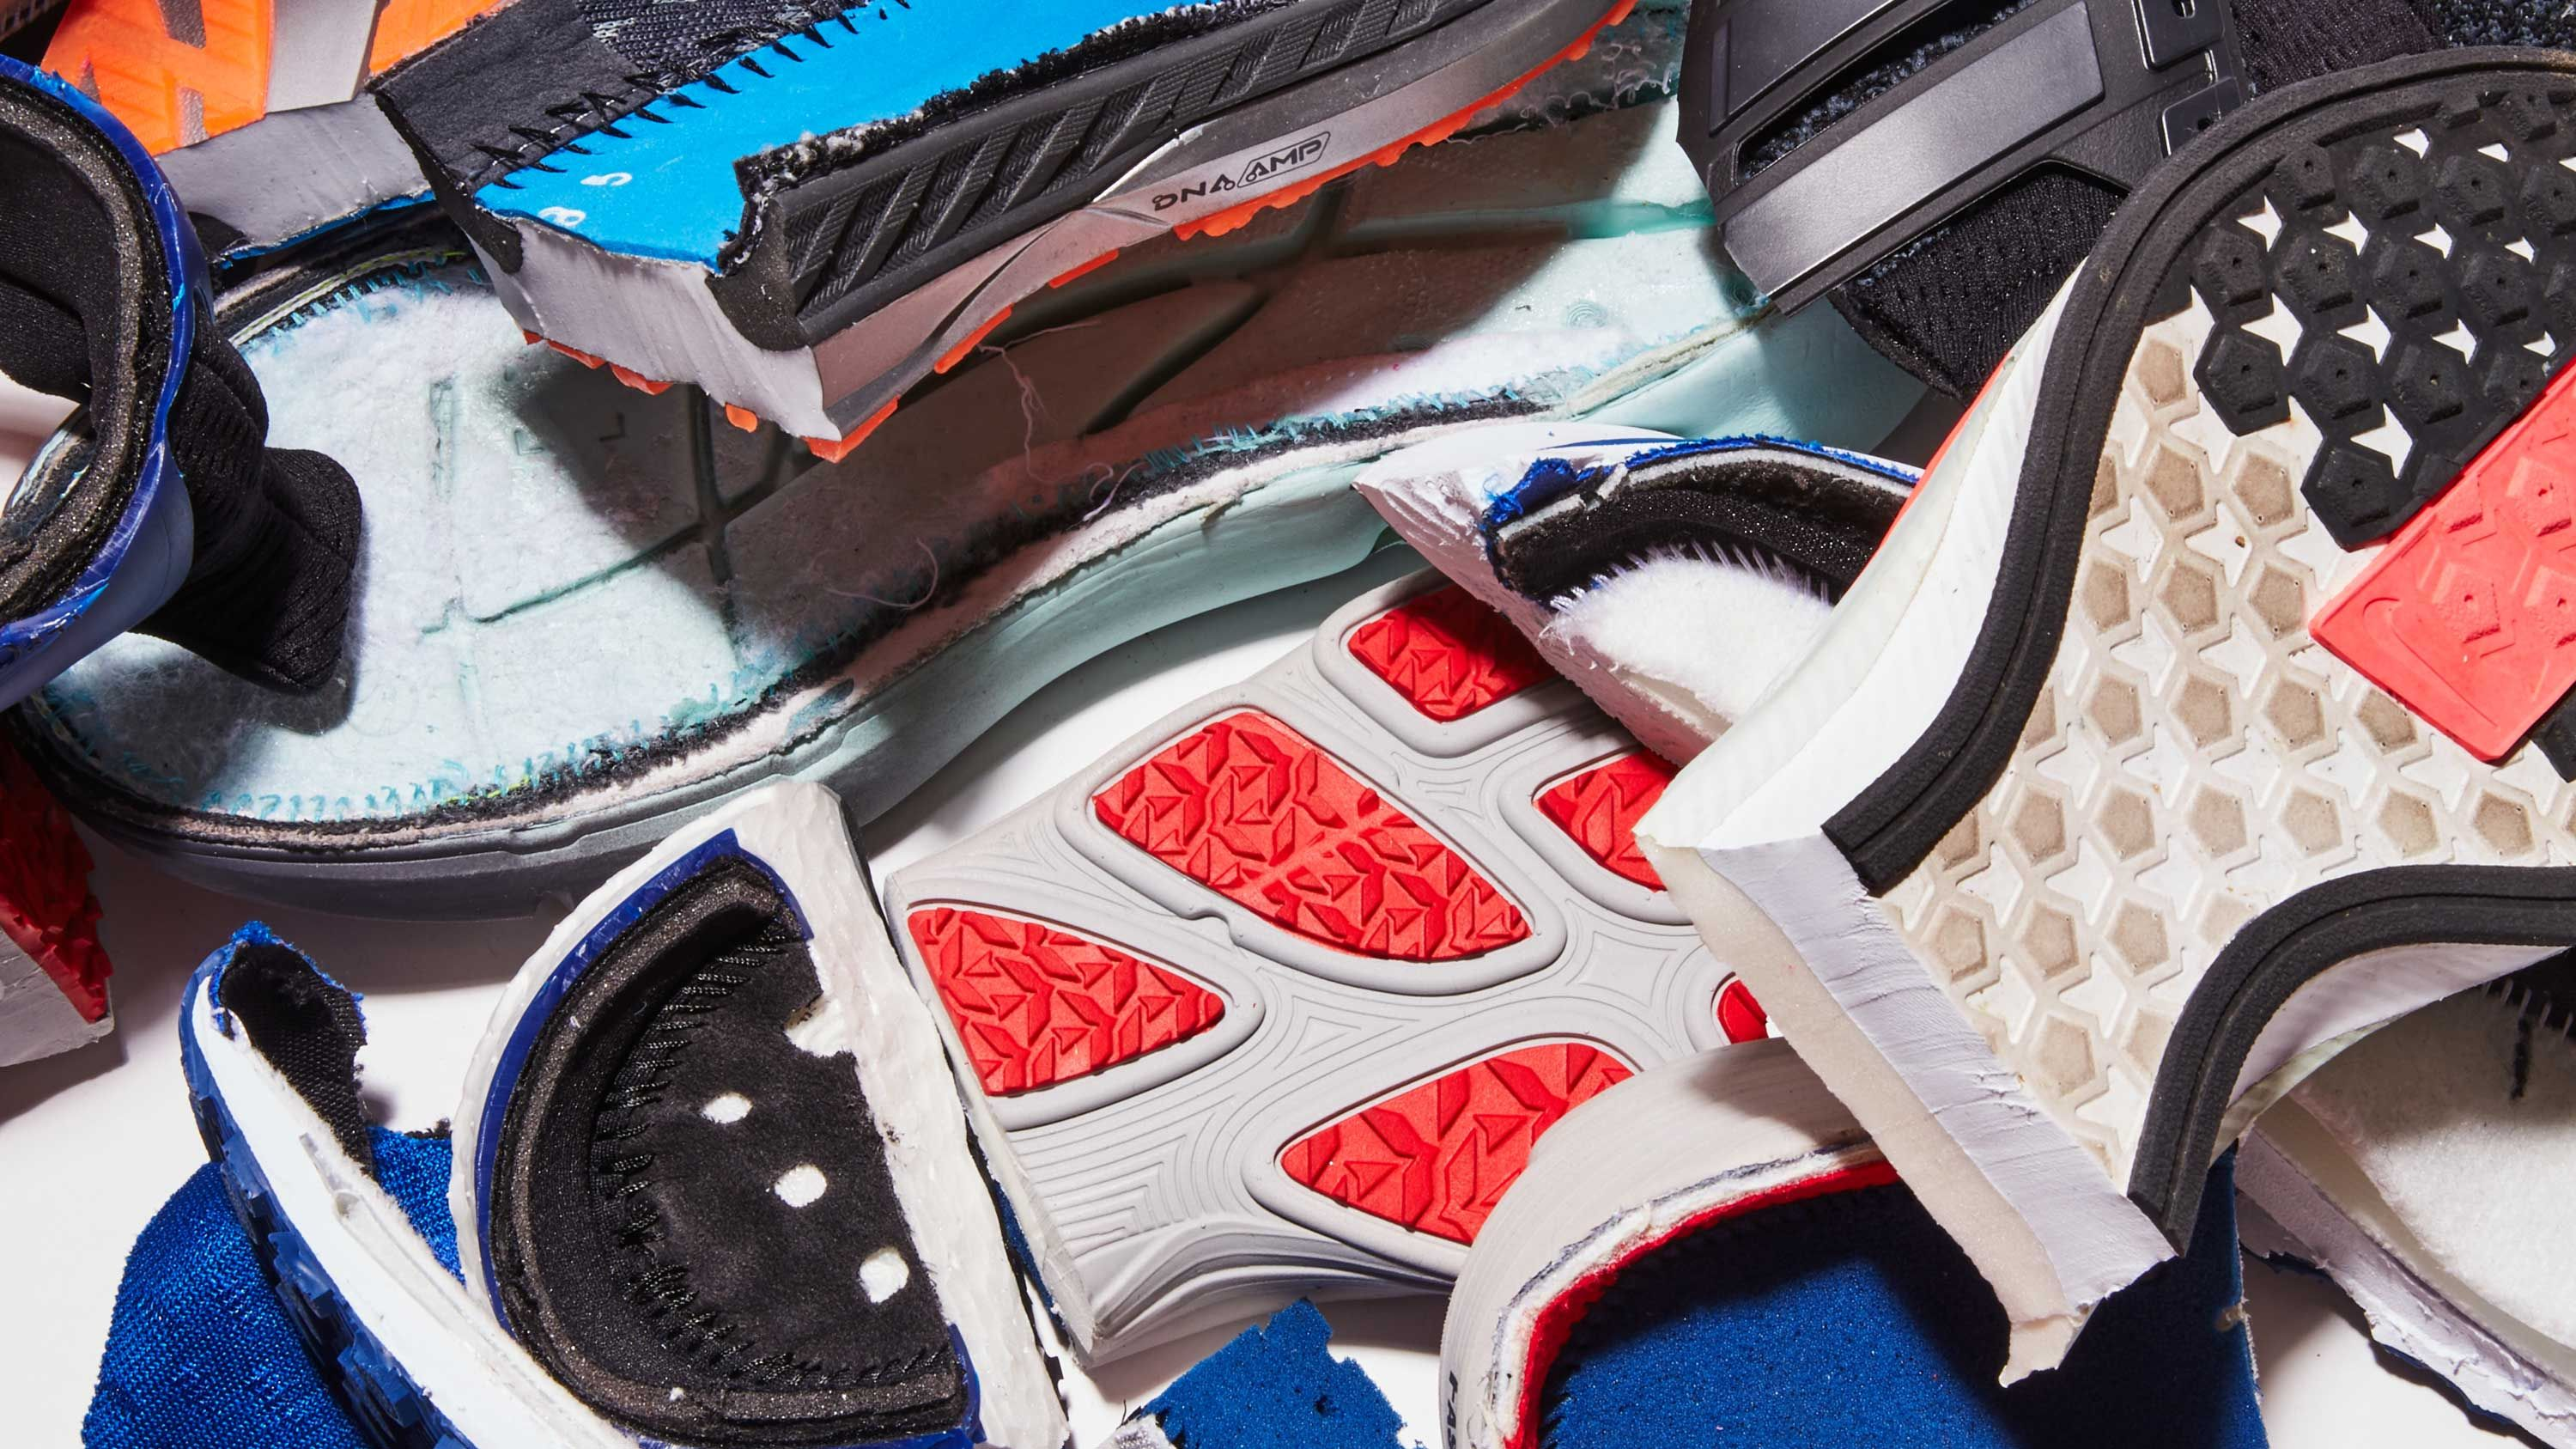 The 5-Minute Guide to Becoming a Running Shoe Expert